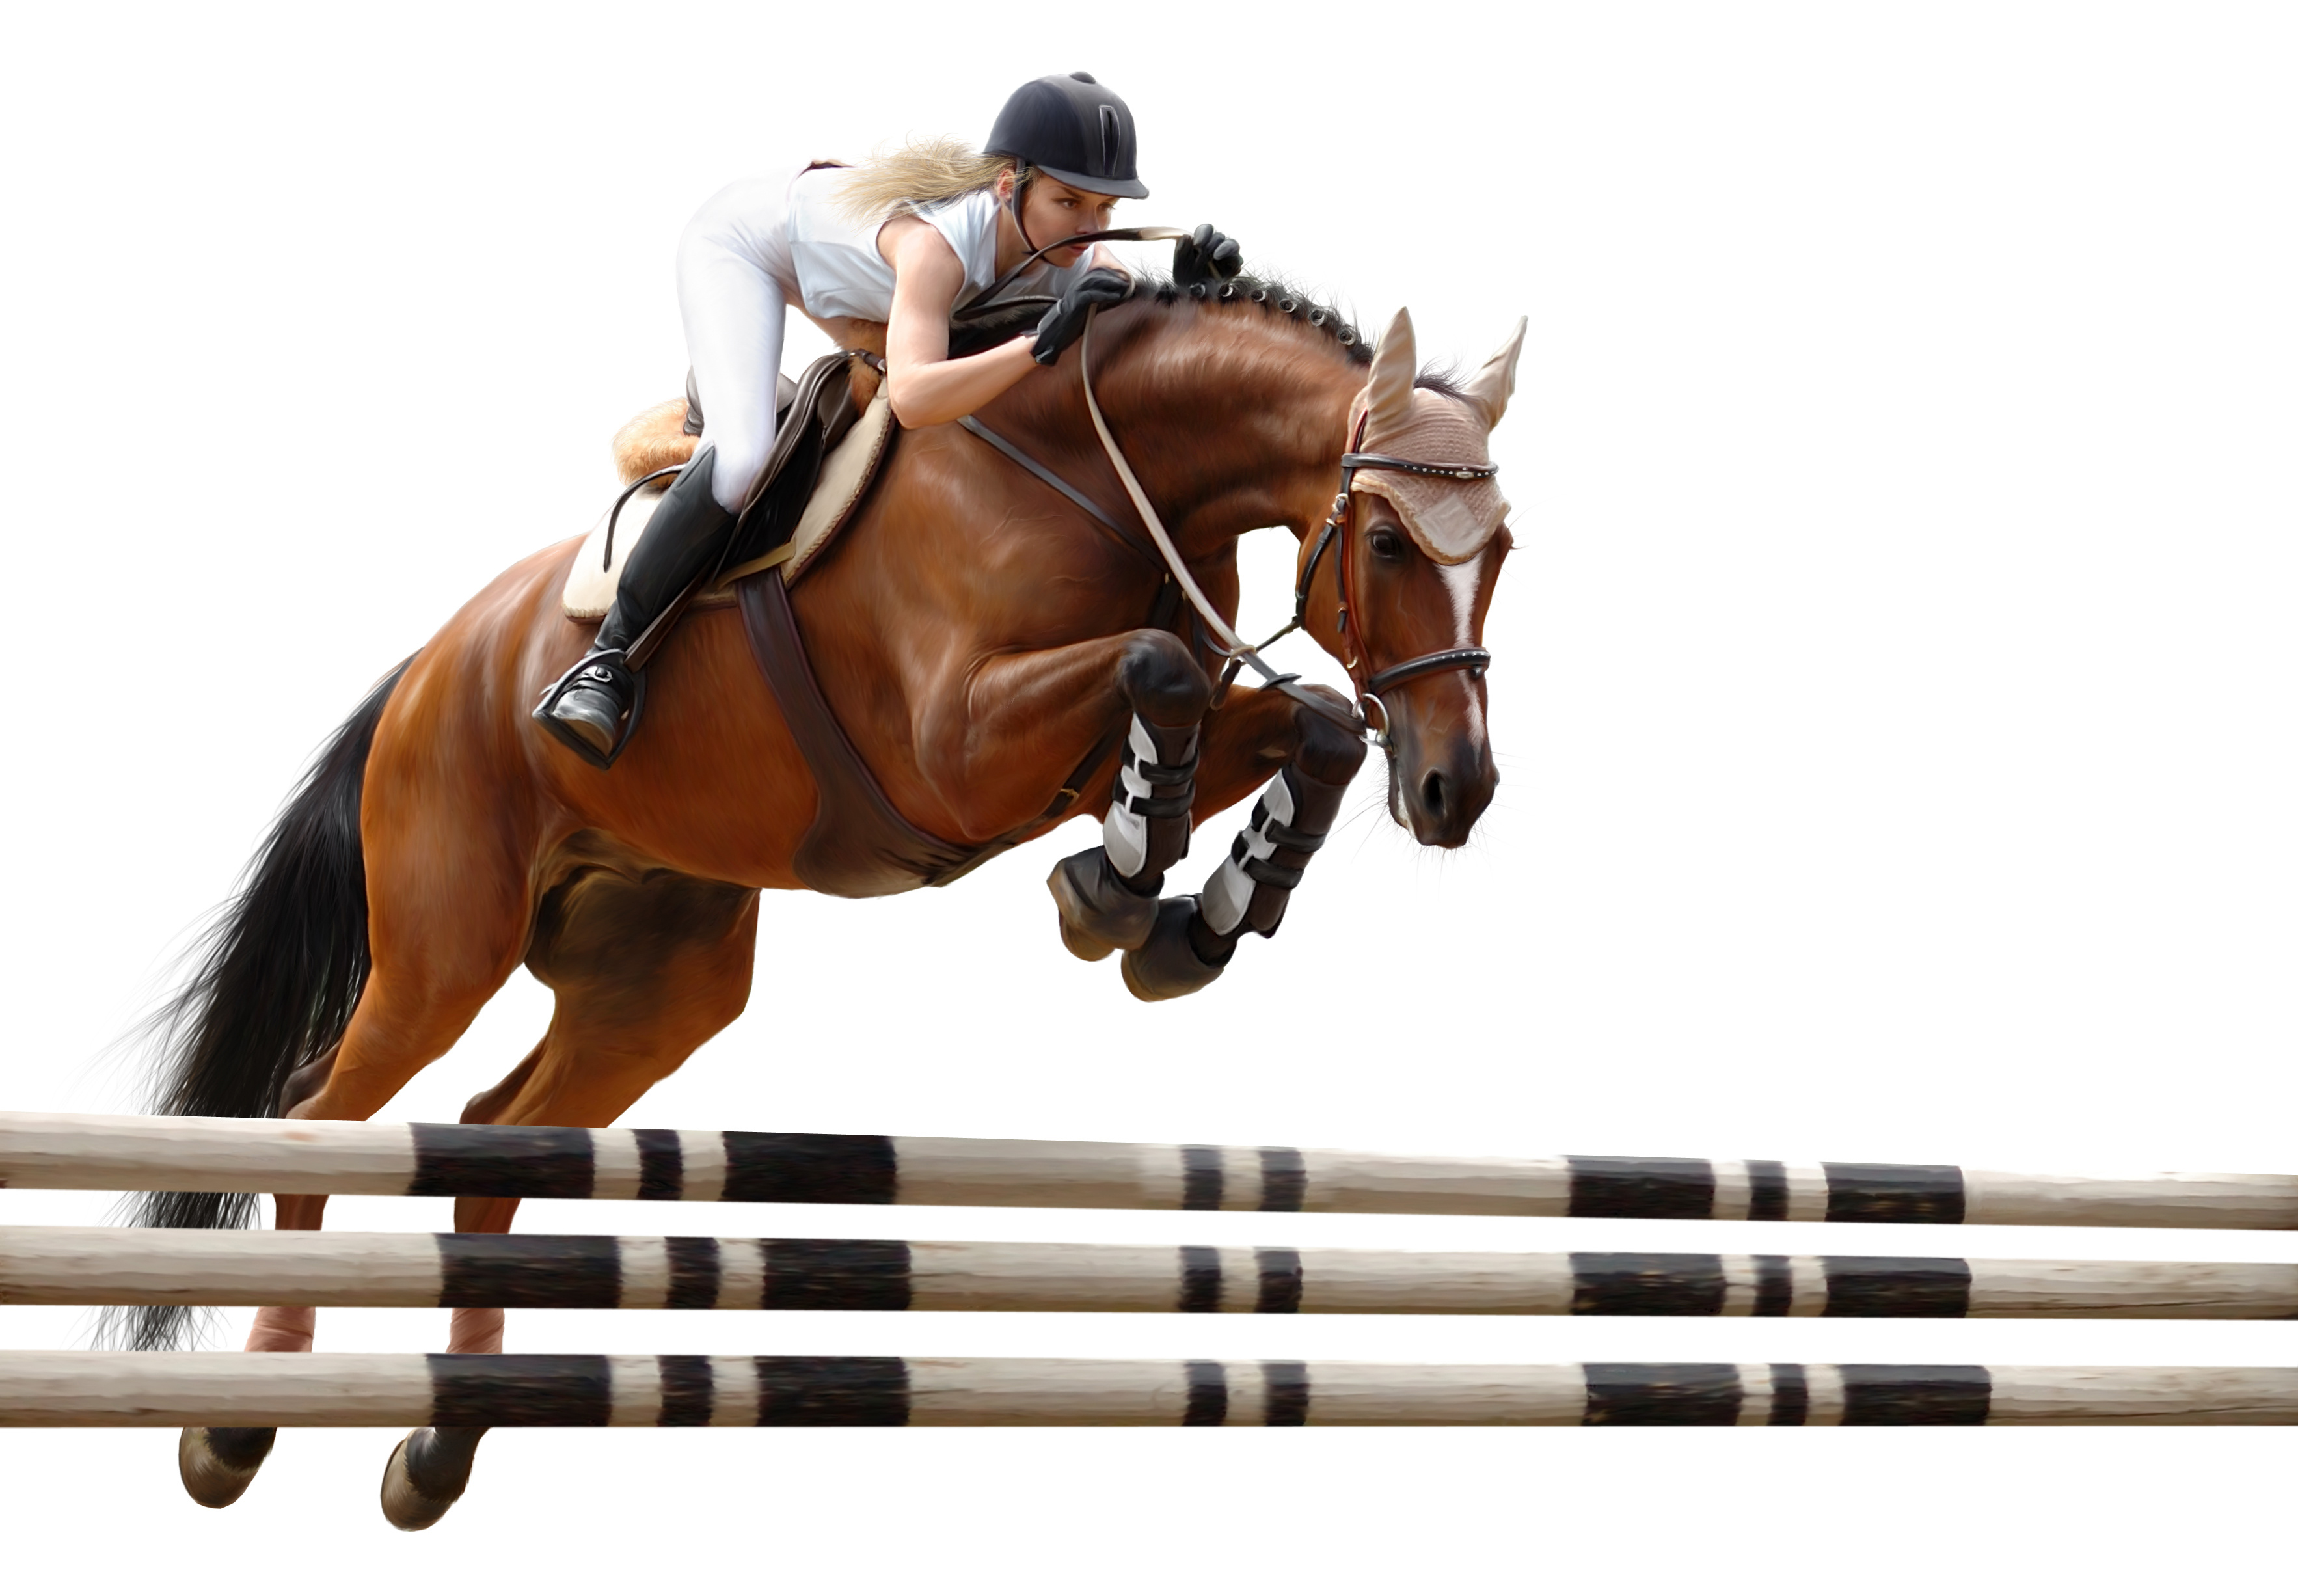 3532x2453 - Show Jumping Wallpapers 12